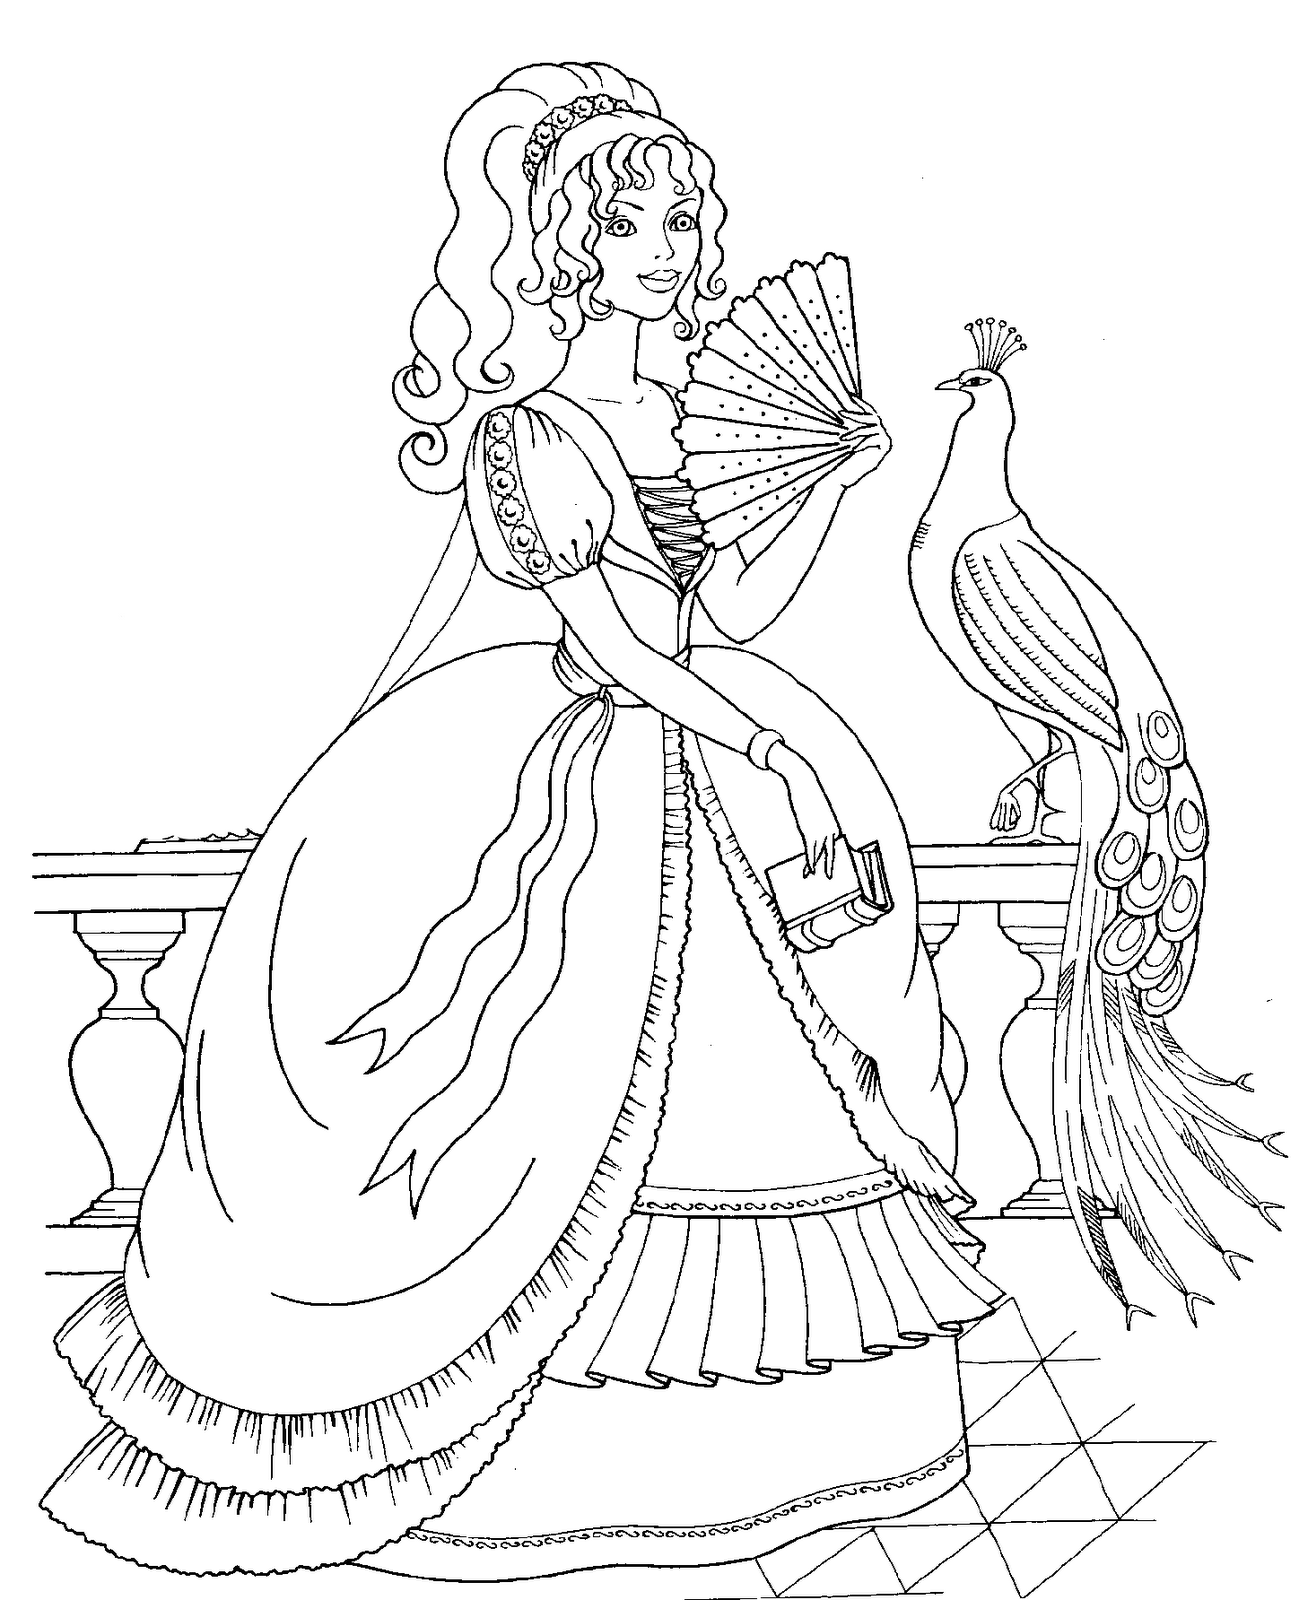 Disney Princess And Animals Coloring Pages To Kids Princess Coloring Pages Ariel Coloring Pages Mermaid Coloring Pages [ 1600 x 1299 Pixel ]